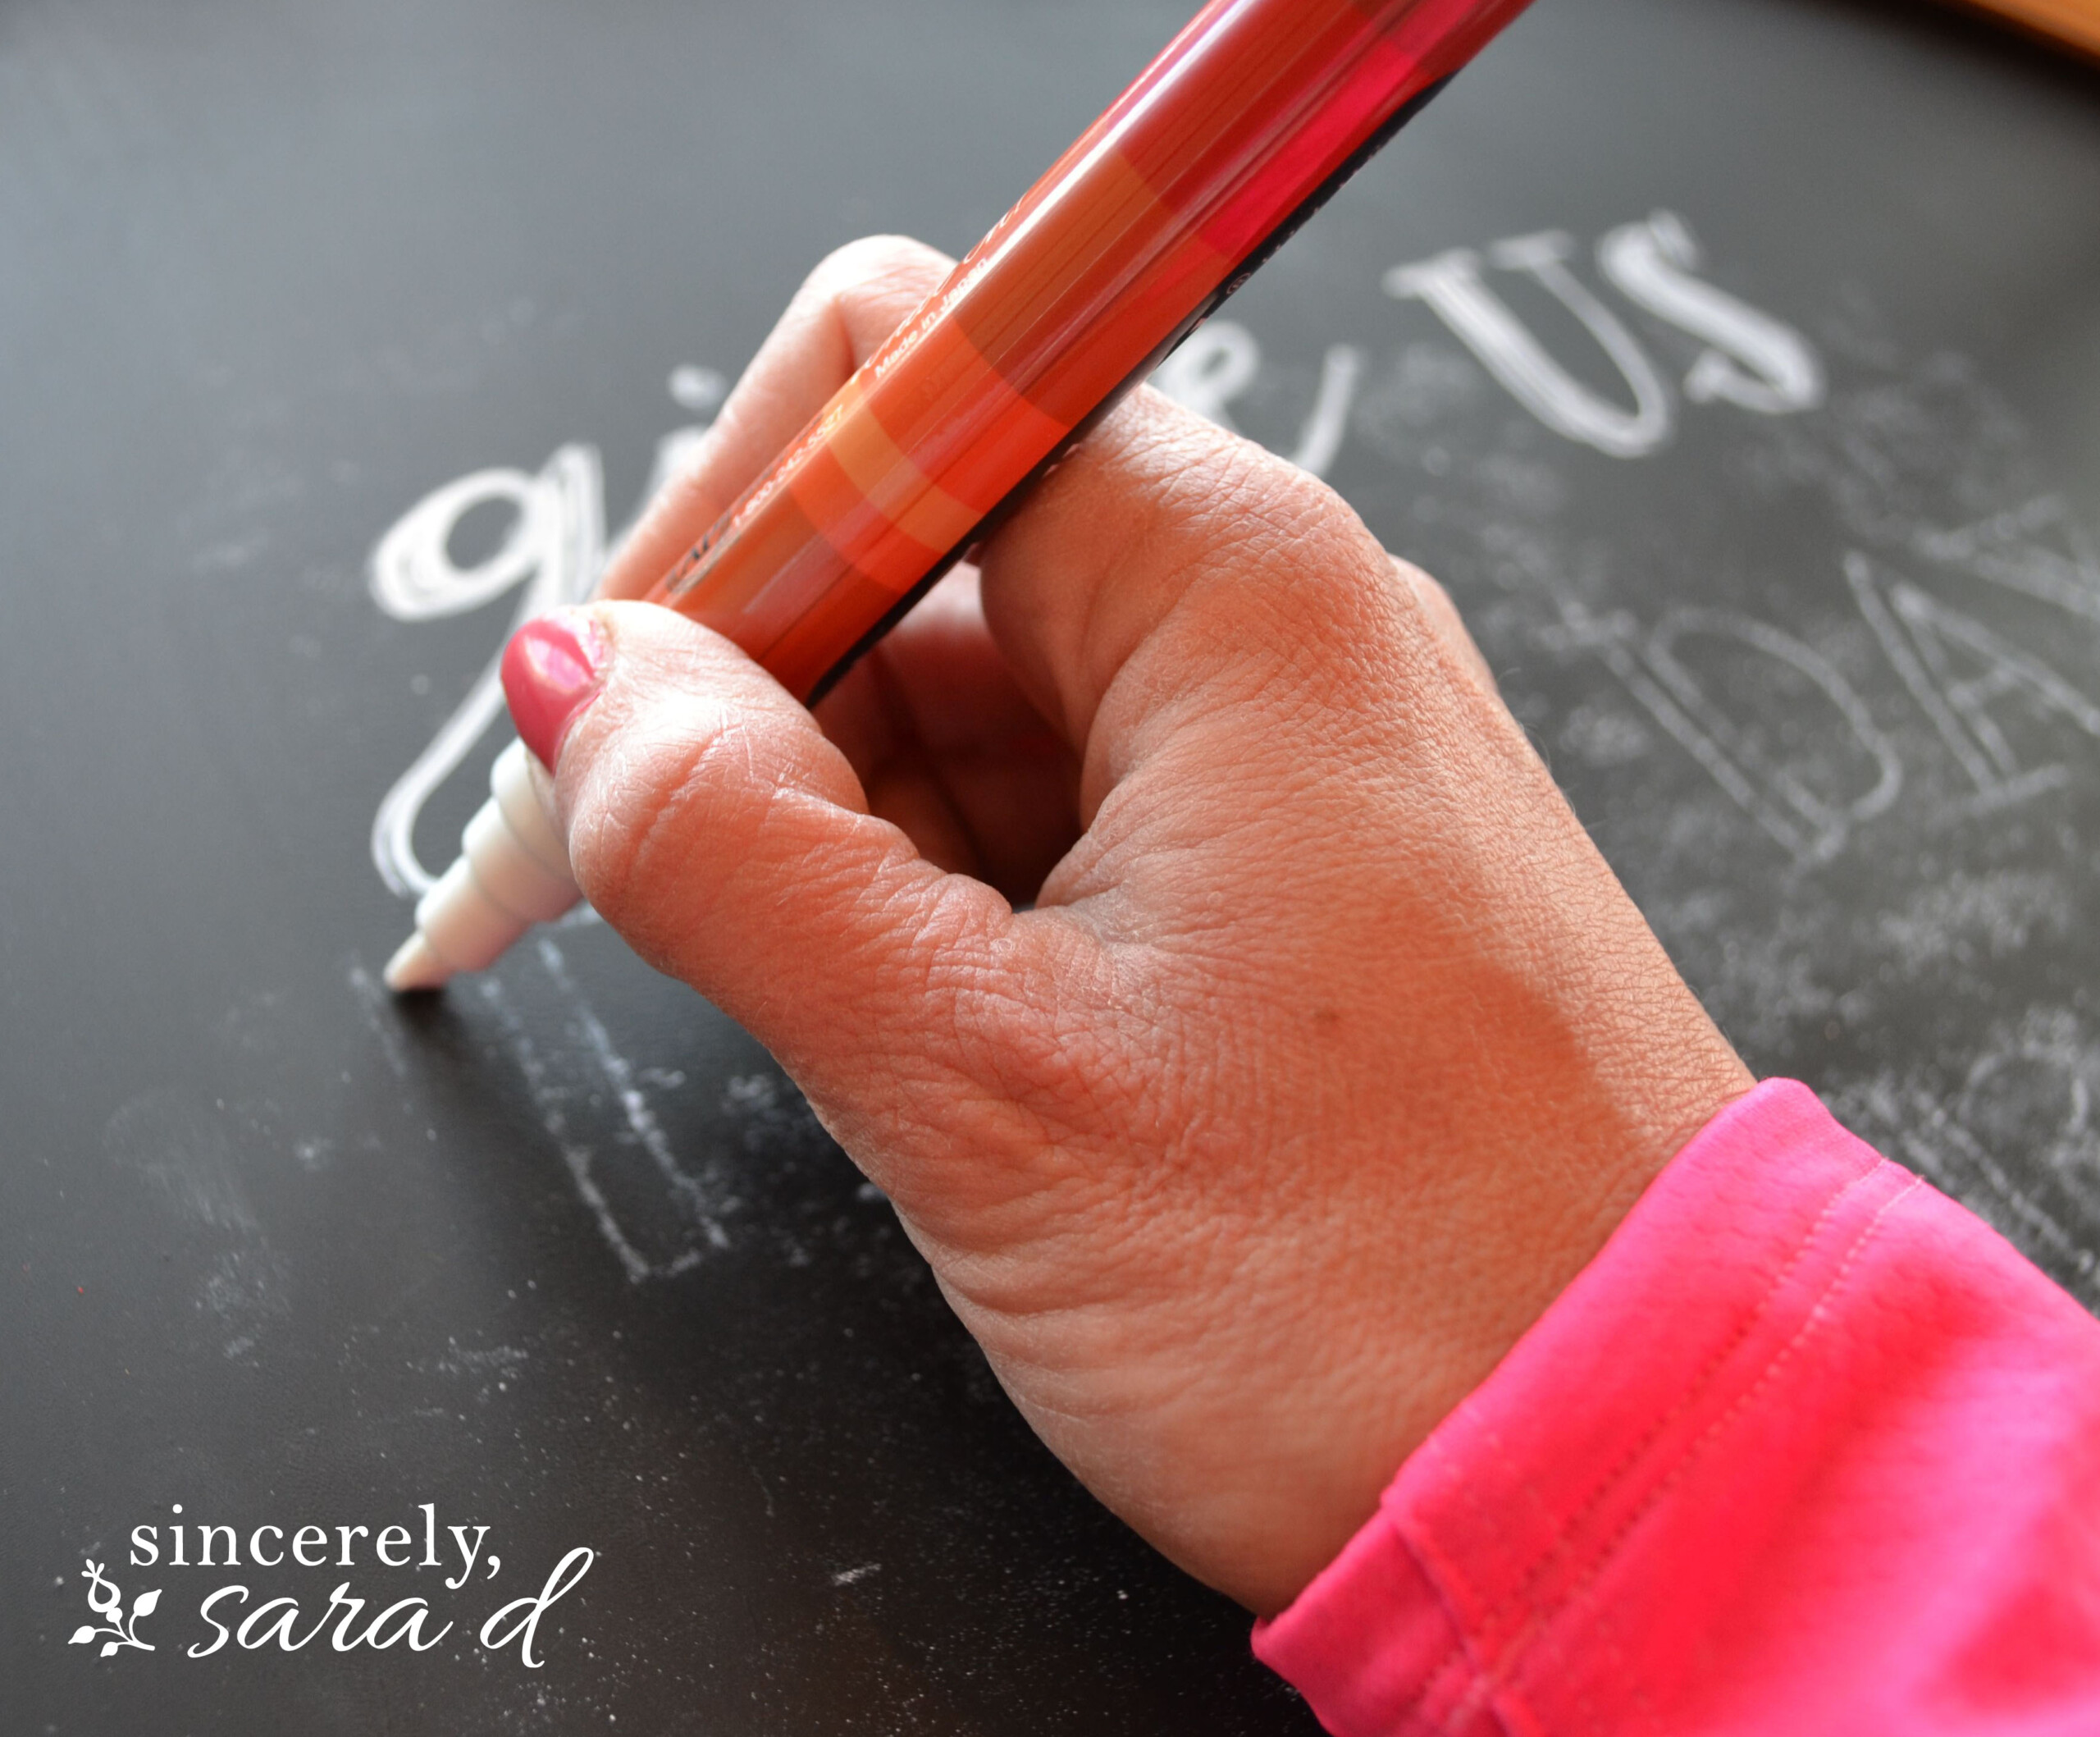 Diy Perfect Chalkboard Lettering - Sincerely, Sara D. | Home